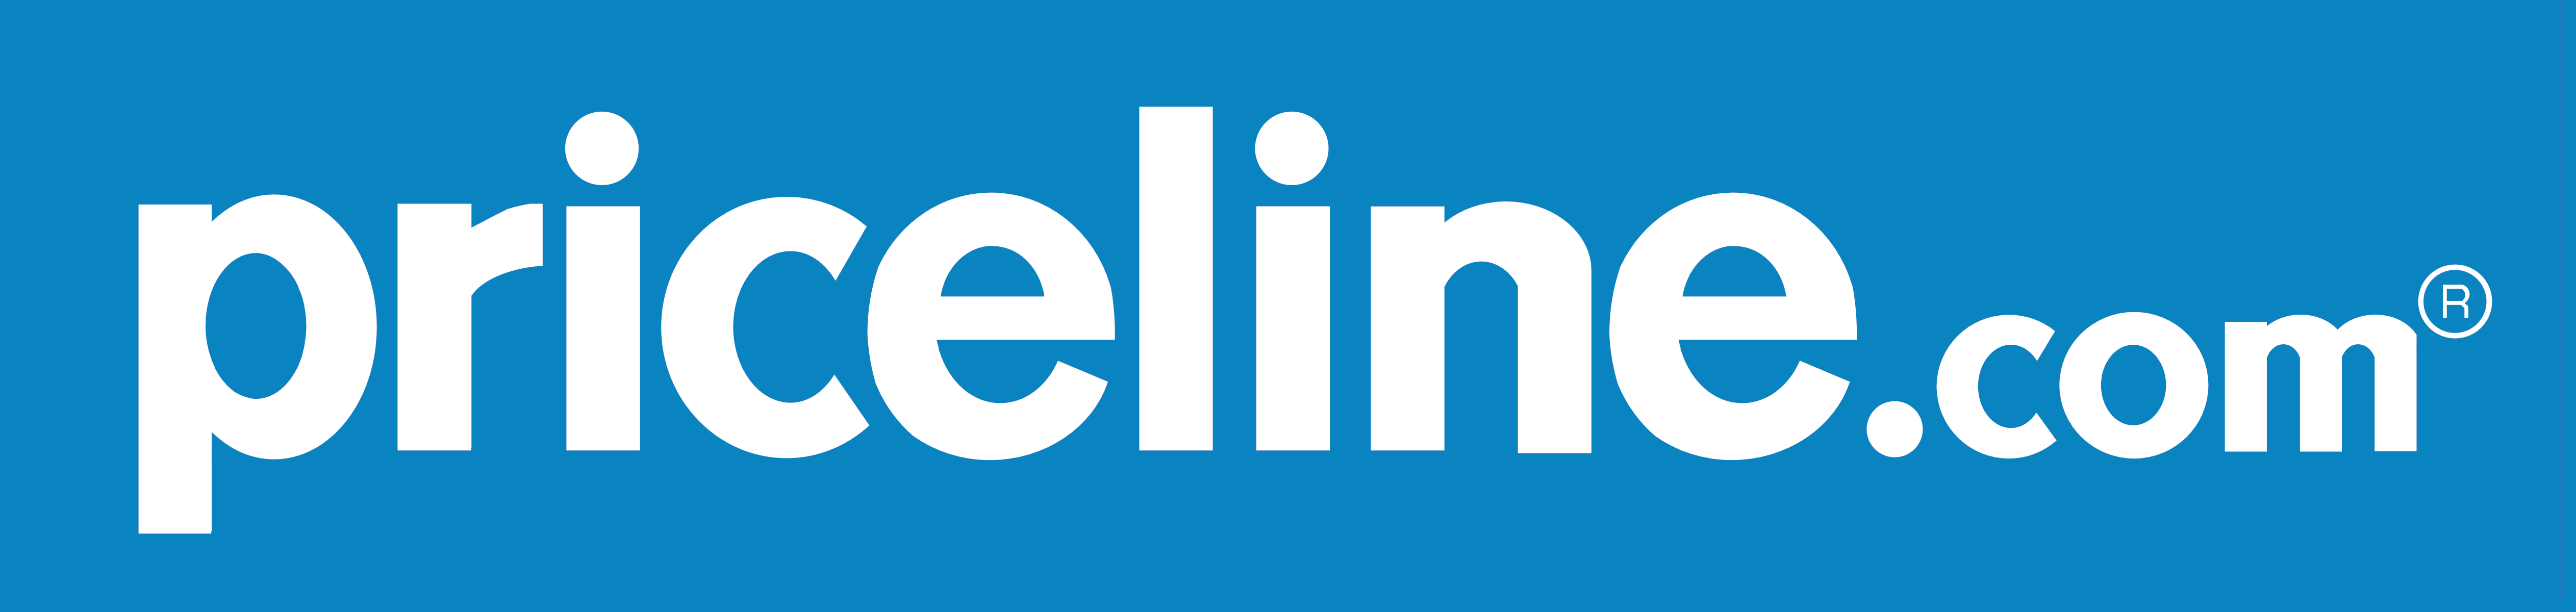 Newly Rebranded Priceline Has Global Ambitions - Skift